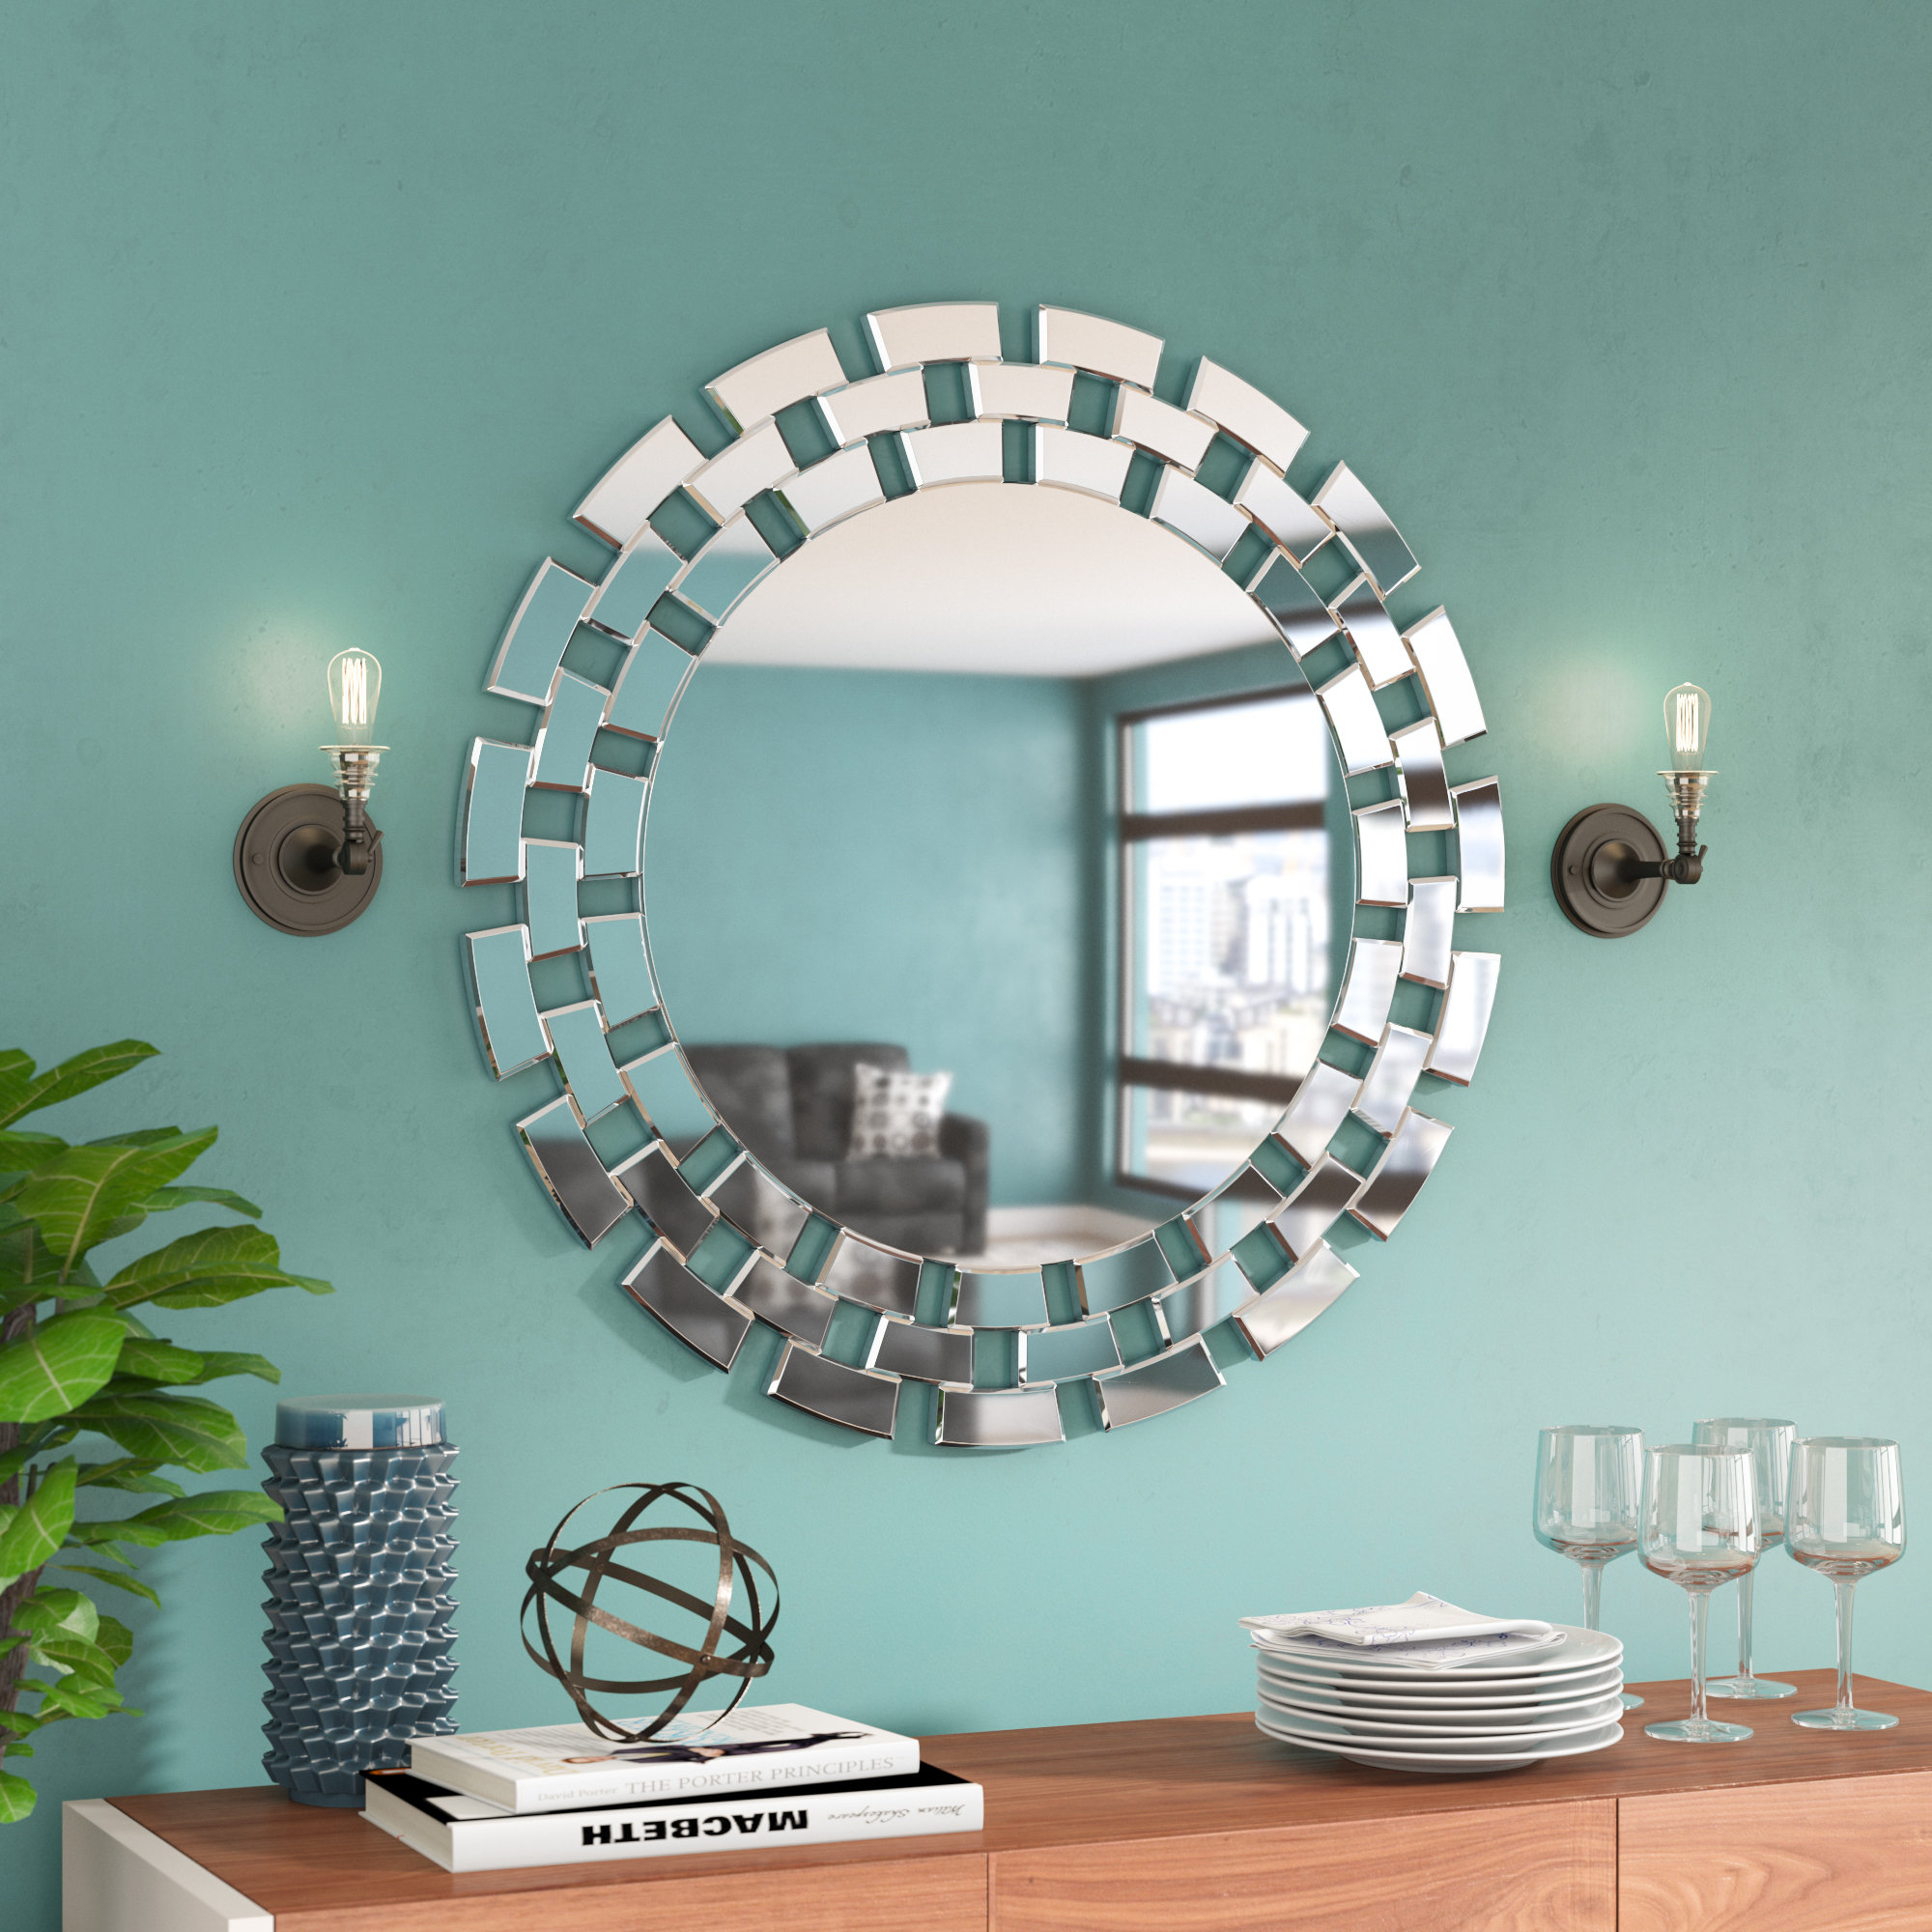 Round Glass Wall Accent Mirror With Tata Openwork Round Wall Mirrors (Image 10 of 20)